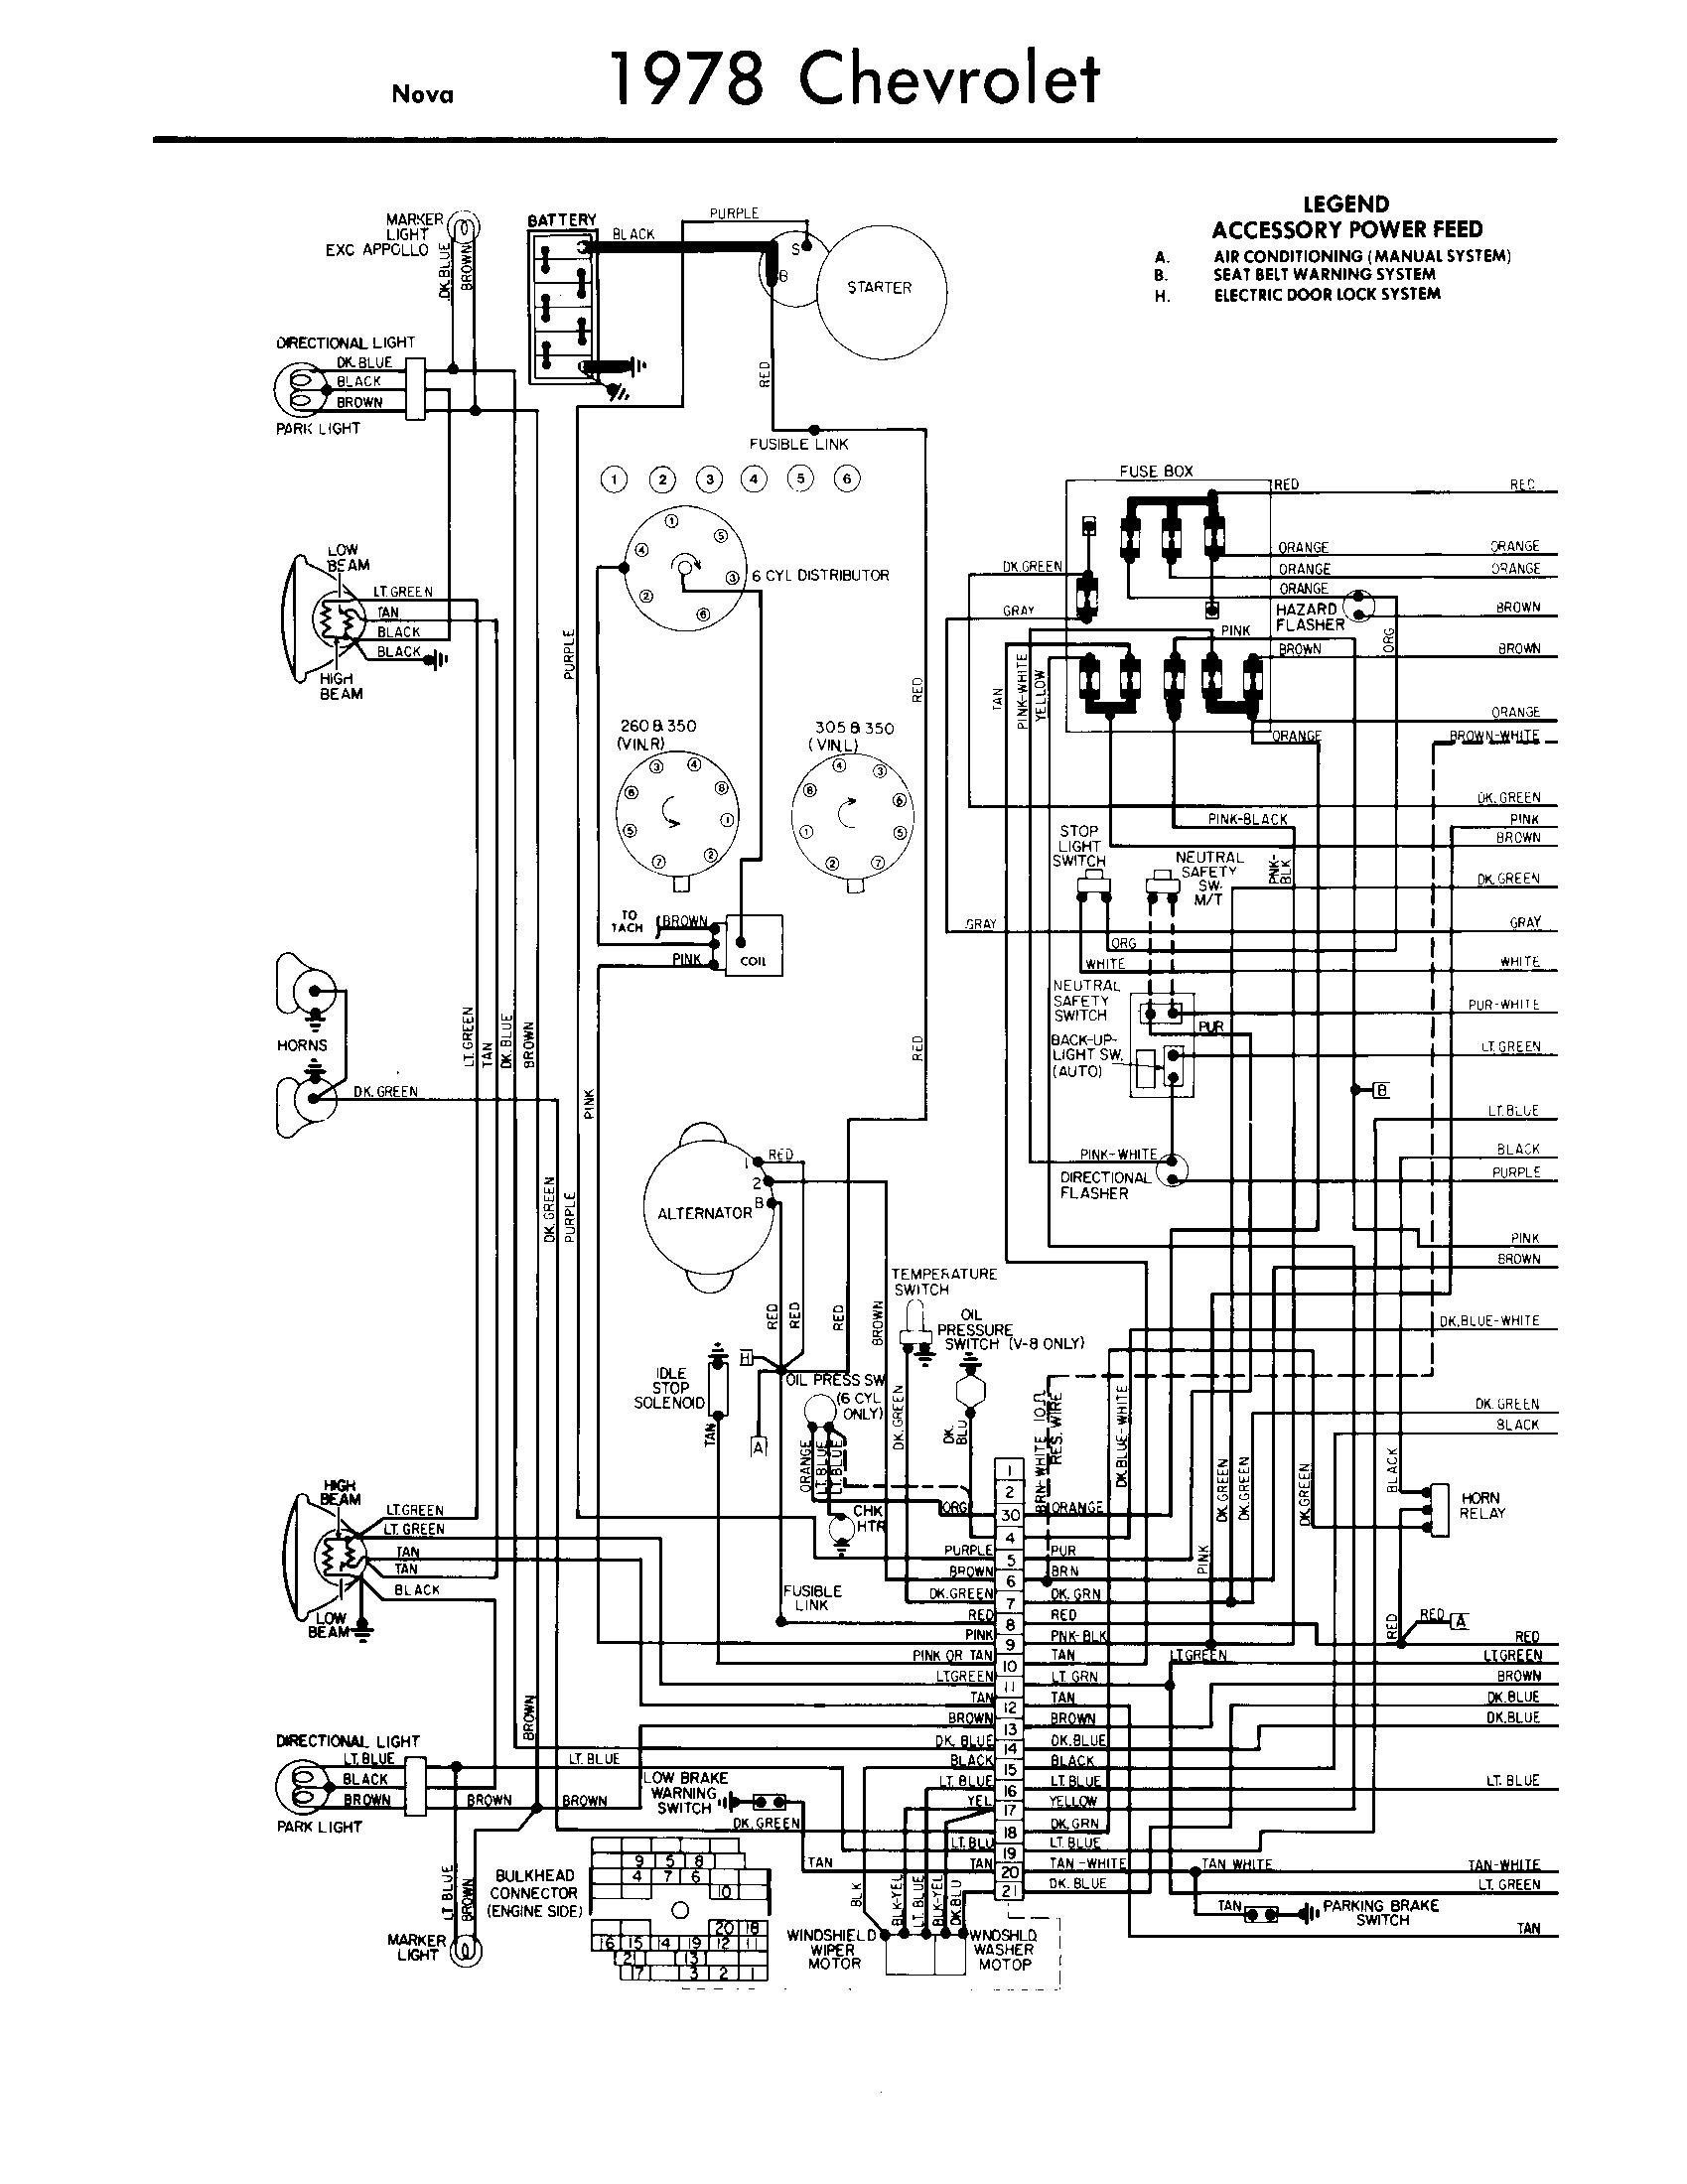 1987 Dakota Wiring Diagram Library Chevy Truck Vacuum Line 1977 Alternator Data Of